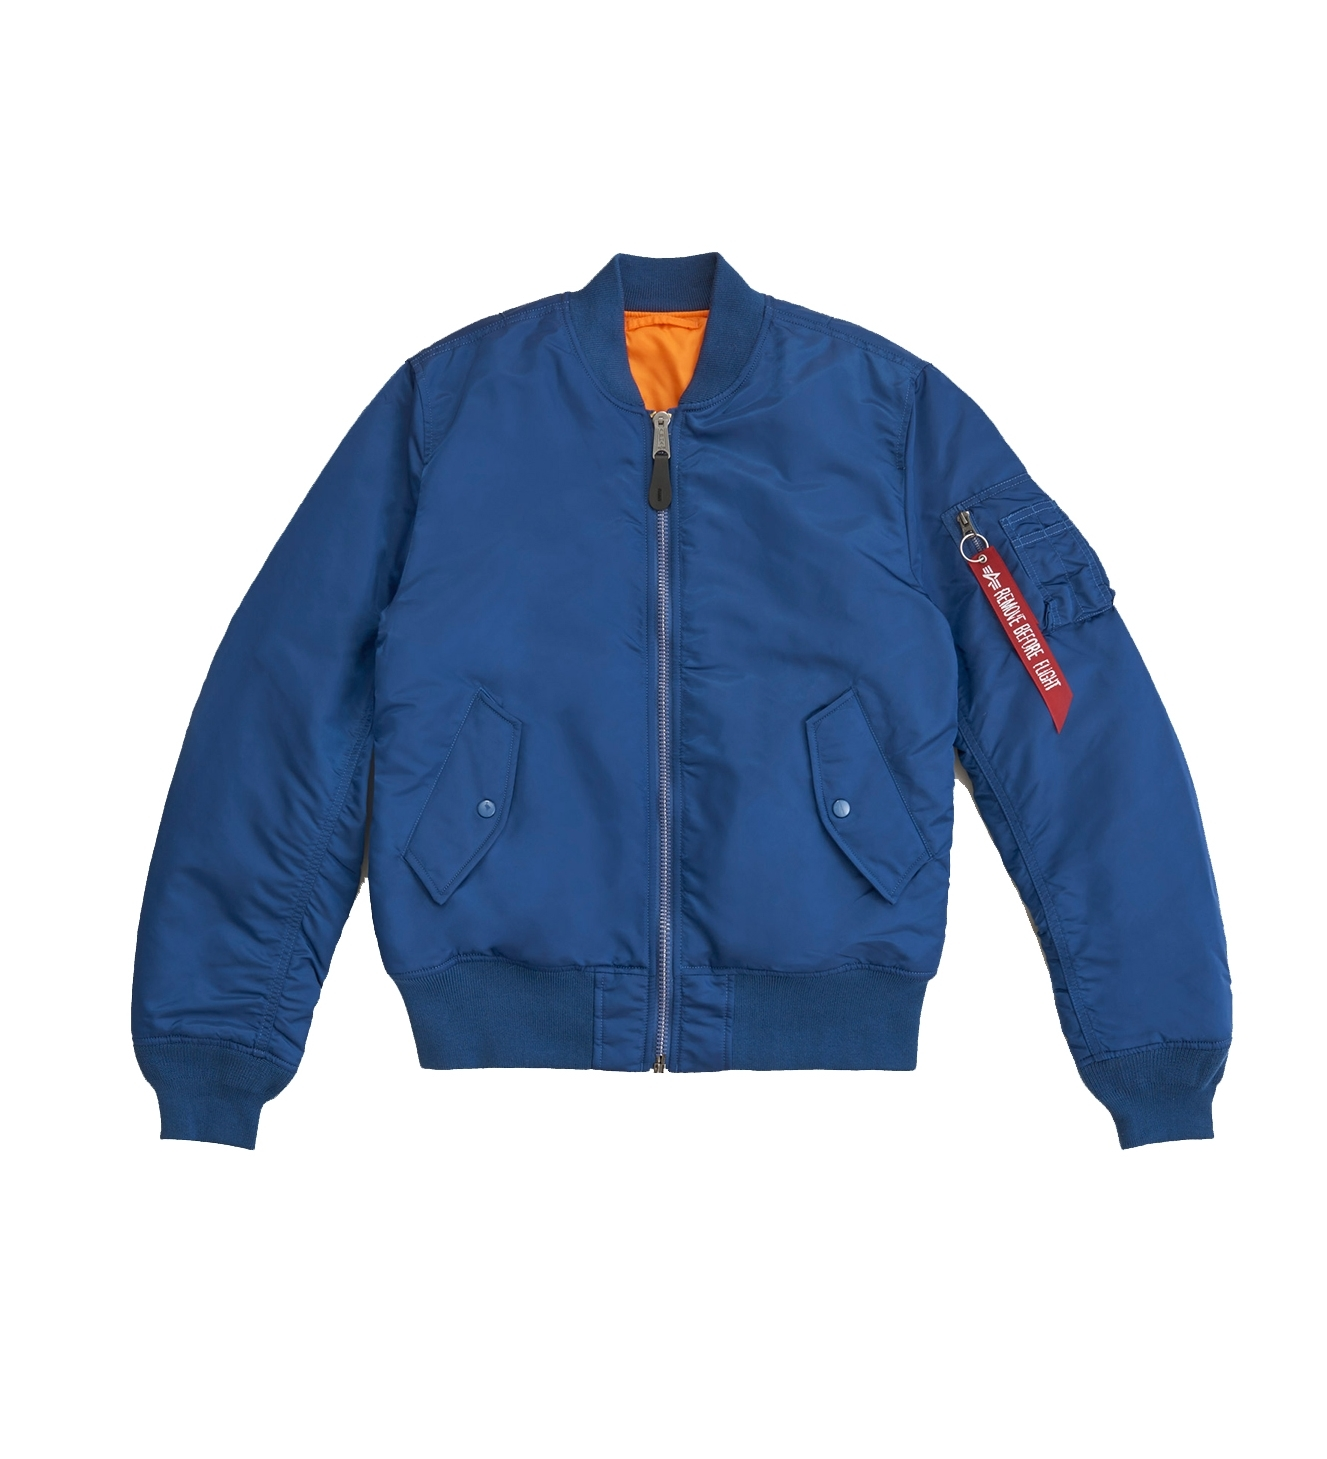 Куртка бомбер Alpha Industries MA-1 Slim Fit/European Blue №9/Orange (синяя)